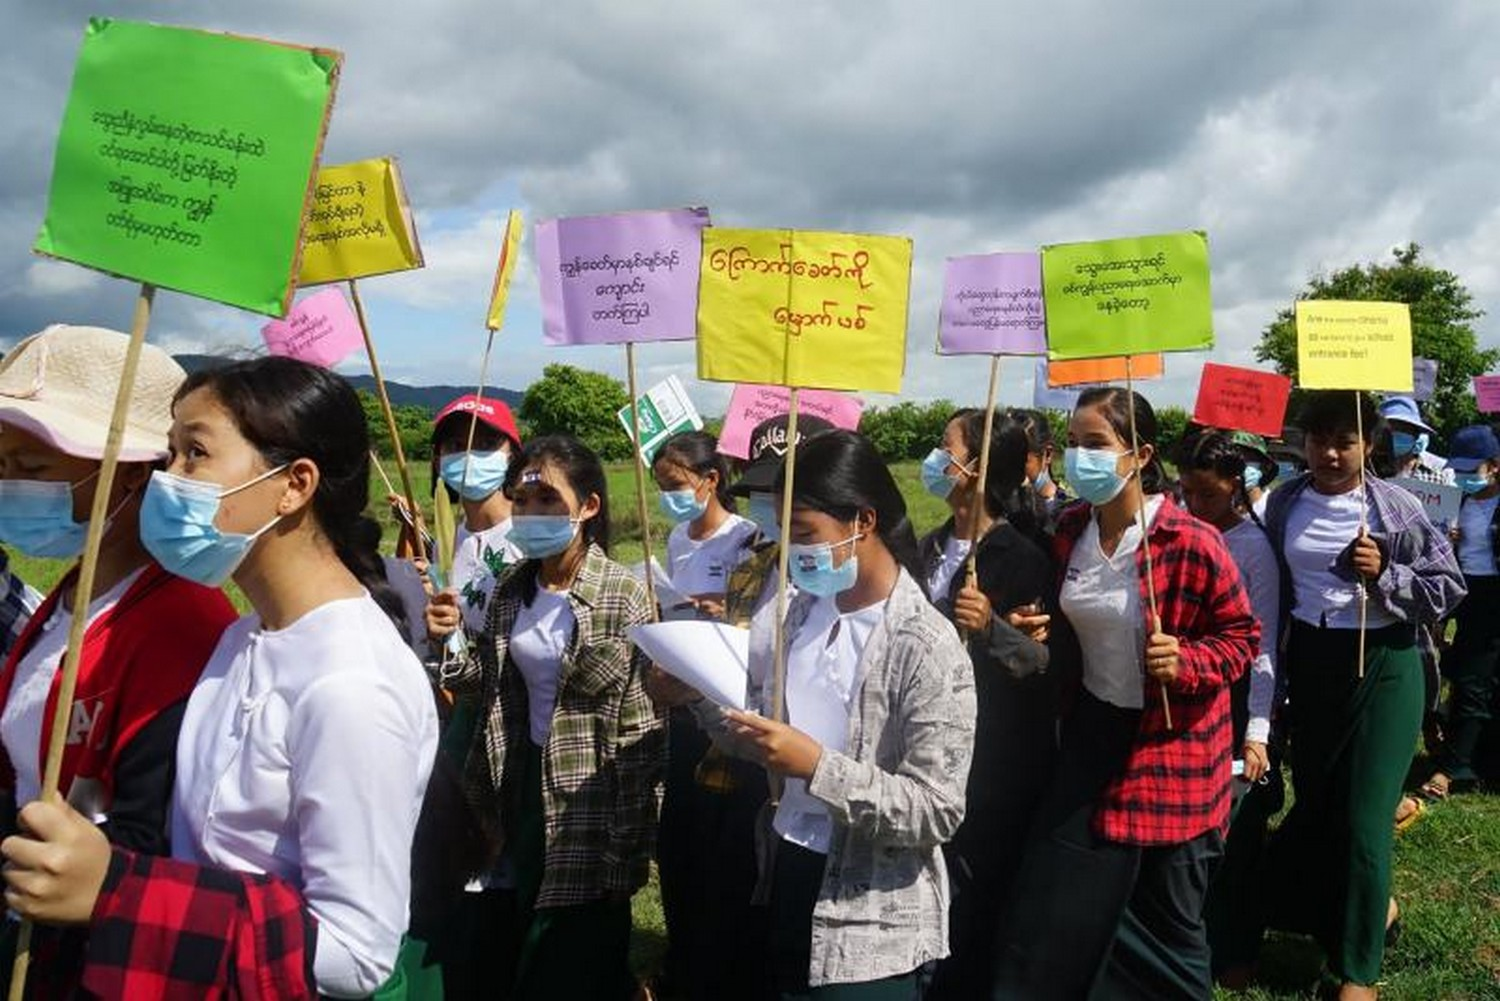 Handout photo from the KNU, taken on May 13, shows teachers in uniforms taking part in A civil disobedience movement demonstration against the military coup in Dooplaya district in Myanmar's Karen state. (Photo: KNU Dooplaya district/ AFP)